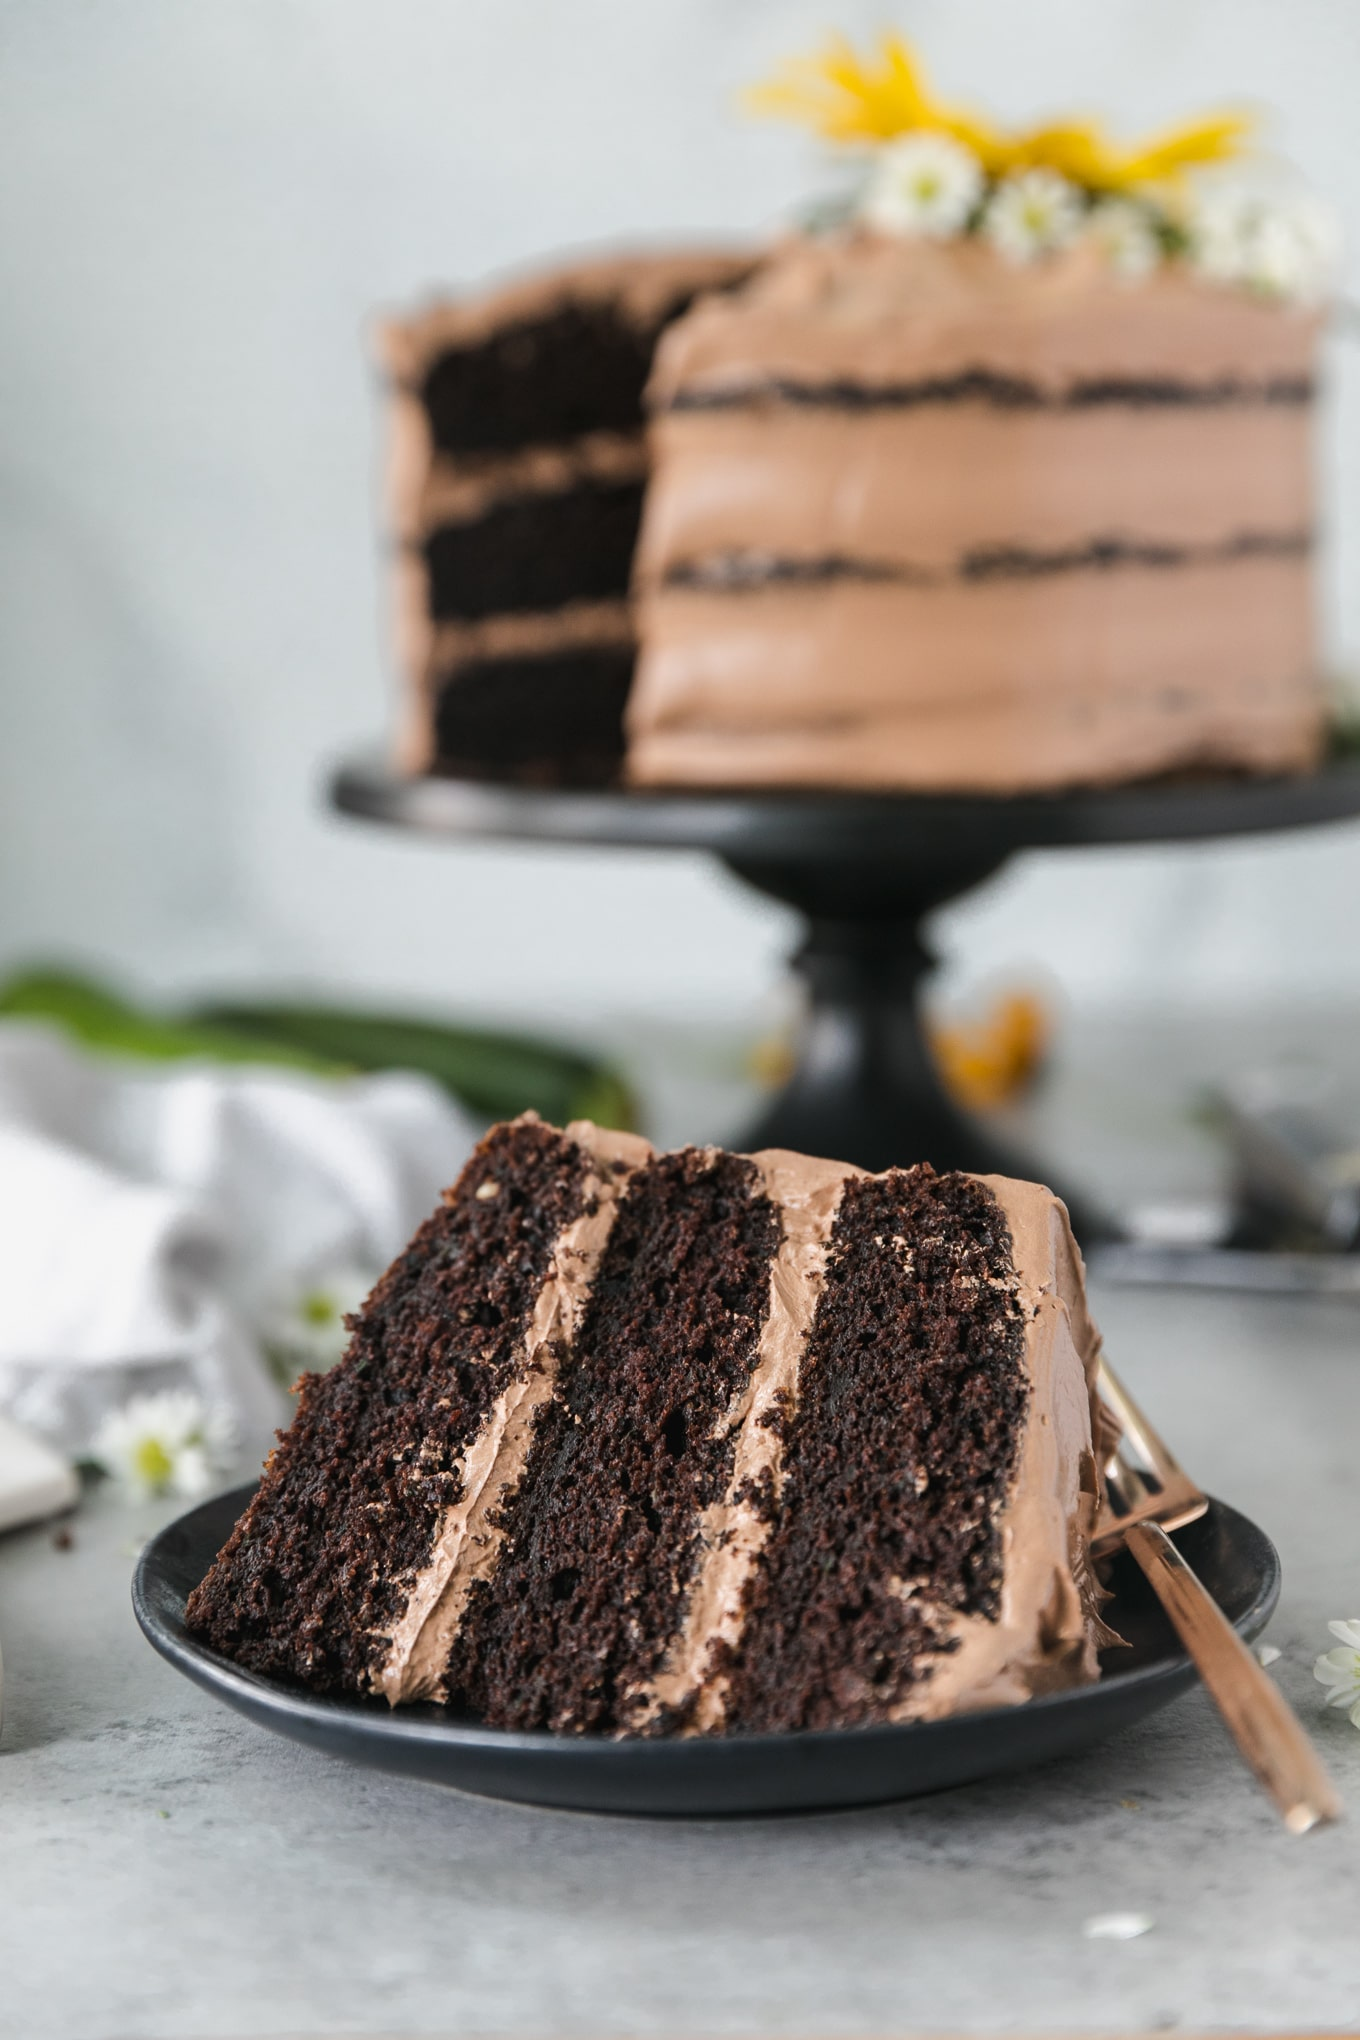 Close up shot of a piece of chocolate cake with the full later cake in the background on a black cake stand